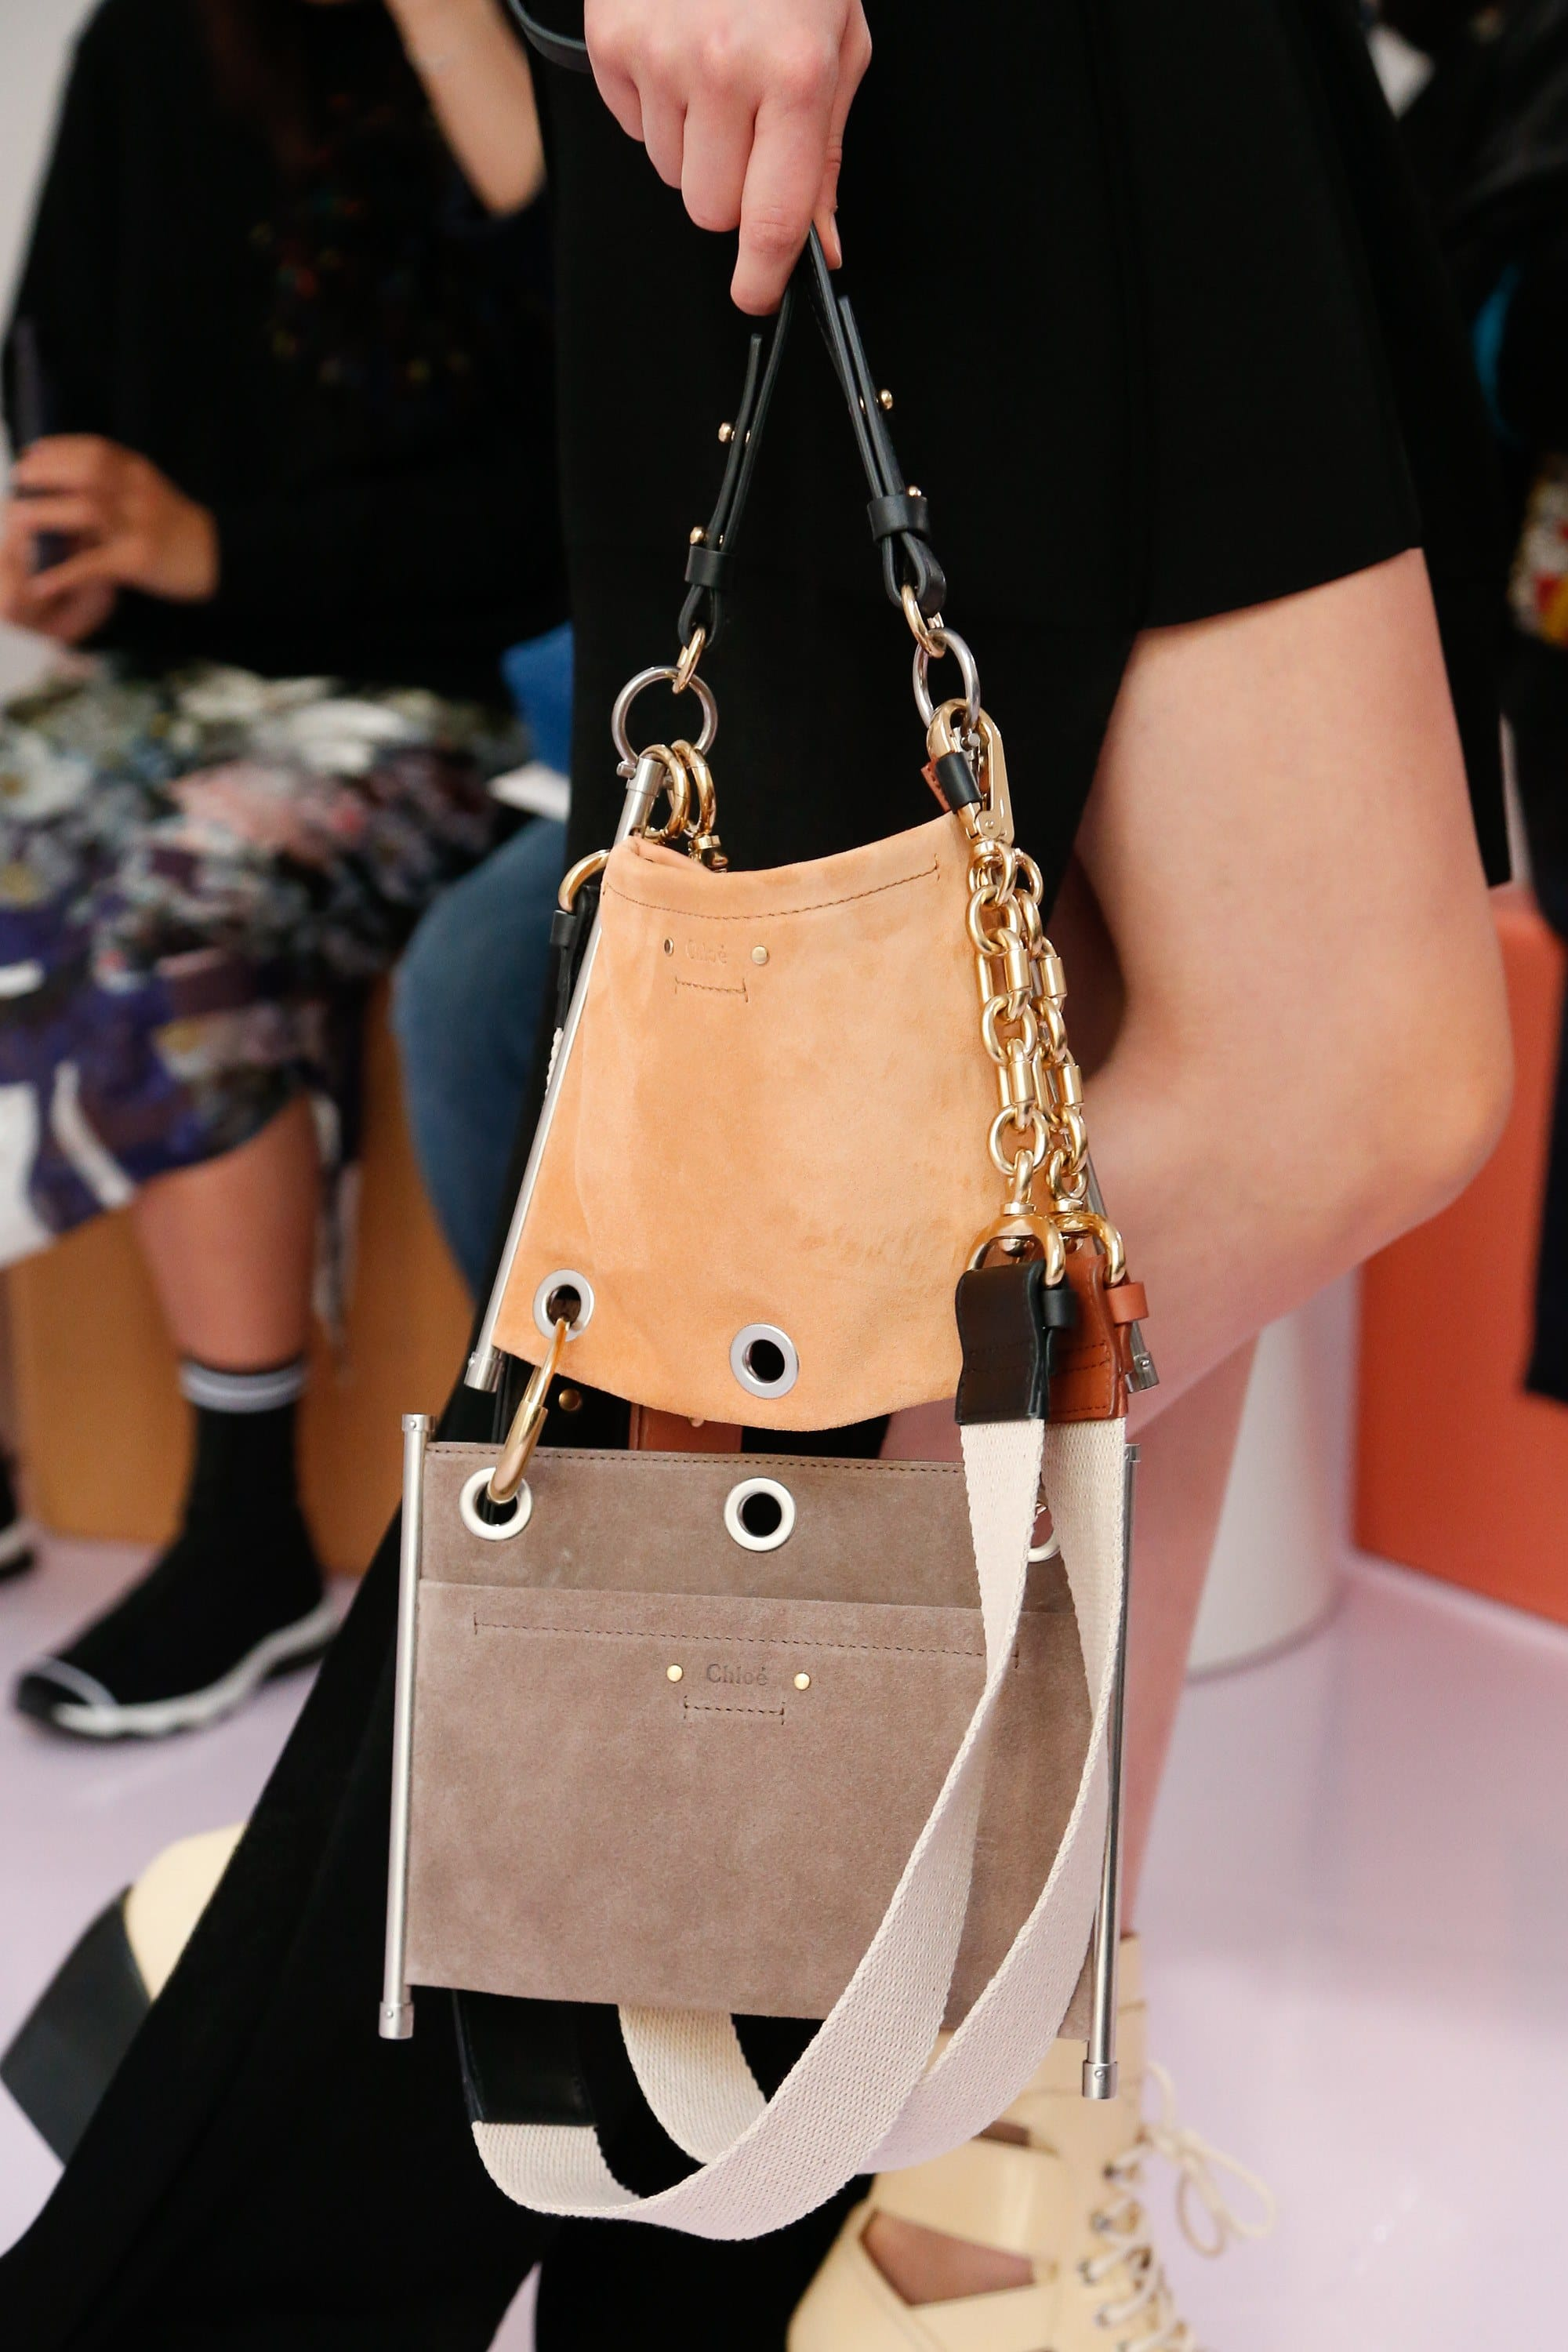 Chloe Spring Summer 2018 Runway Bag Collection Spotted